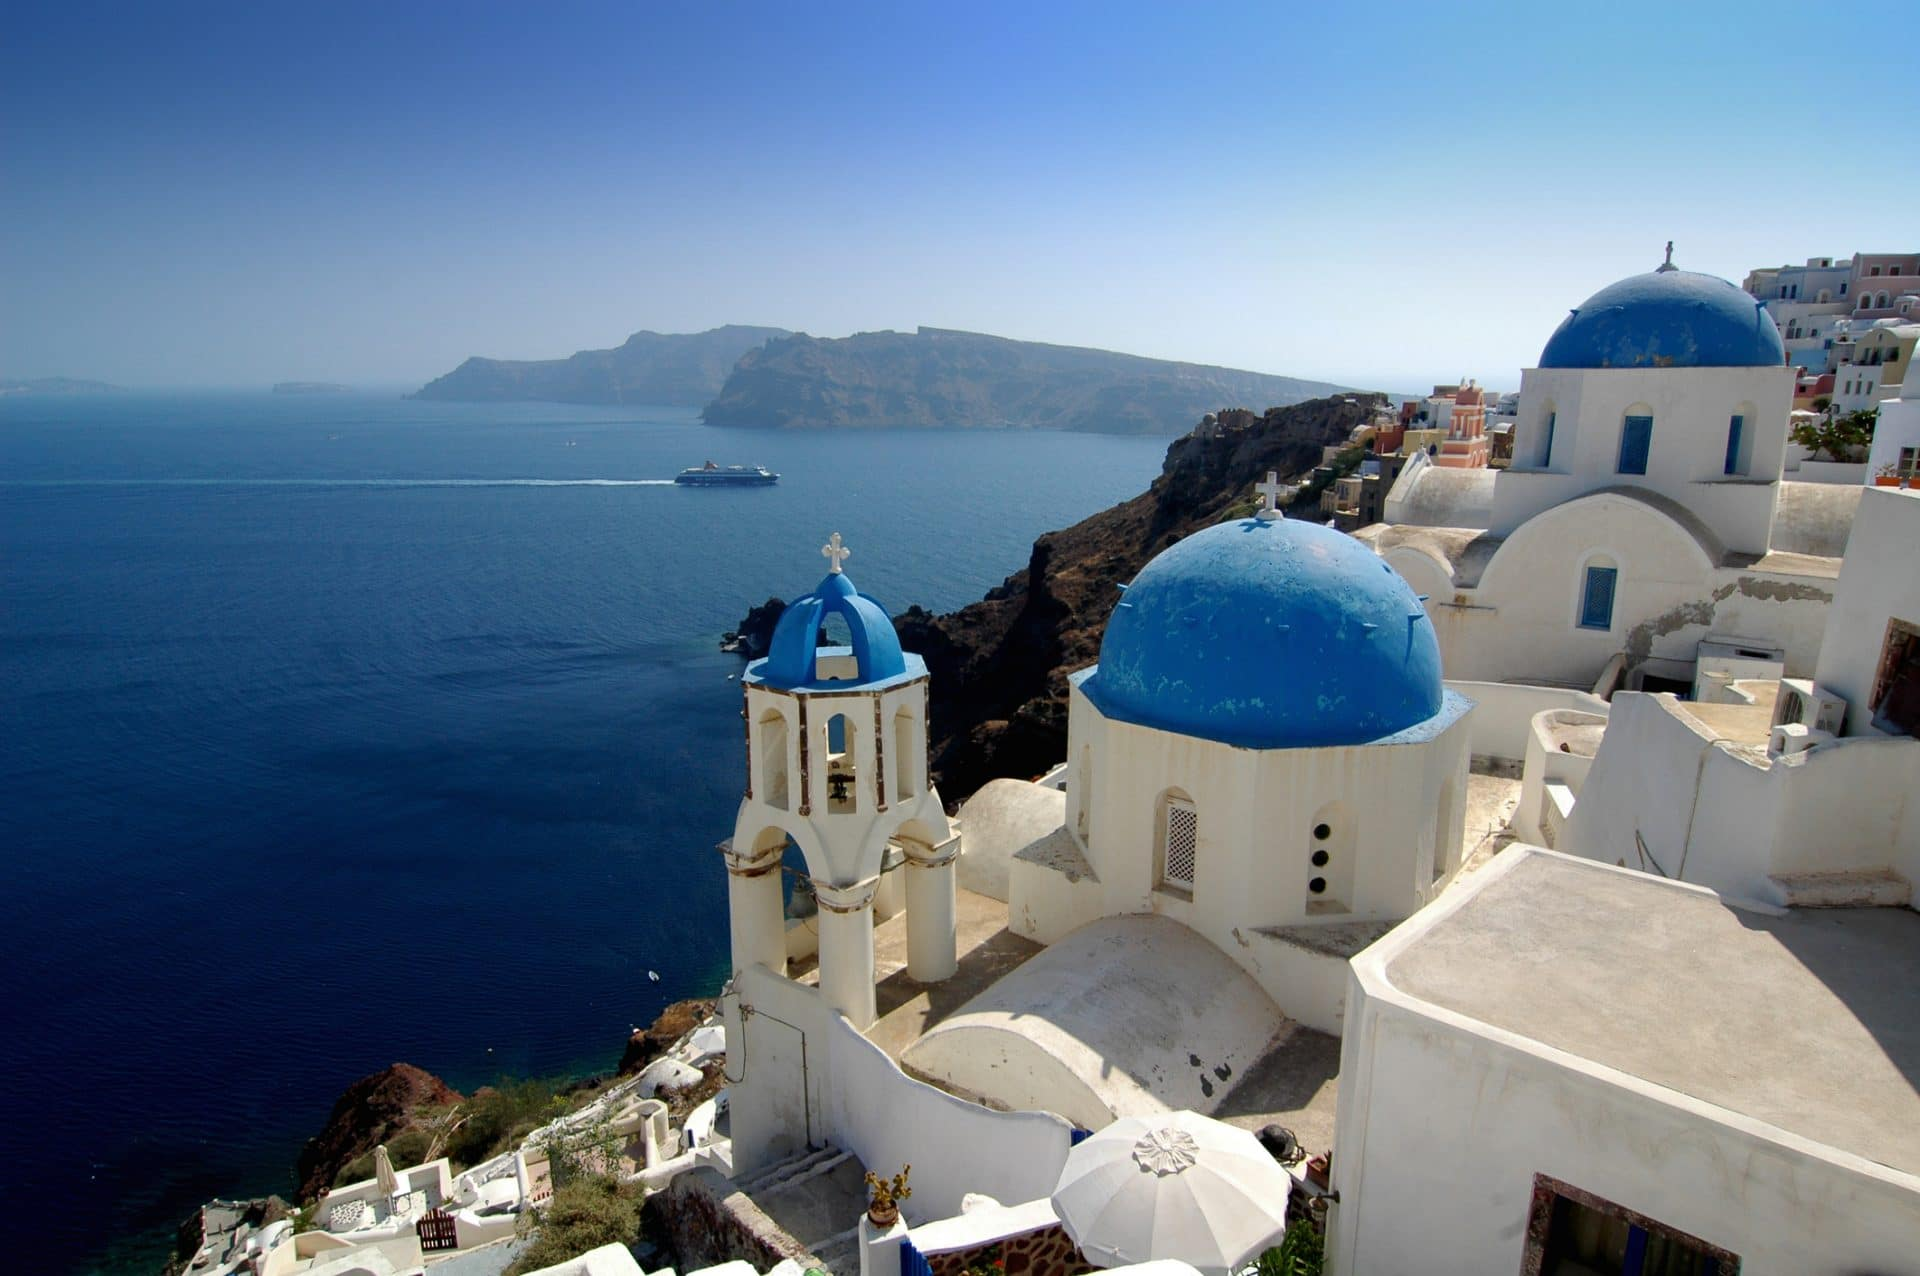 Santorini's amazing views